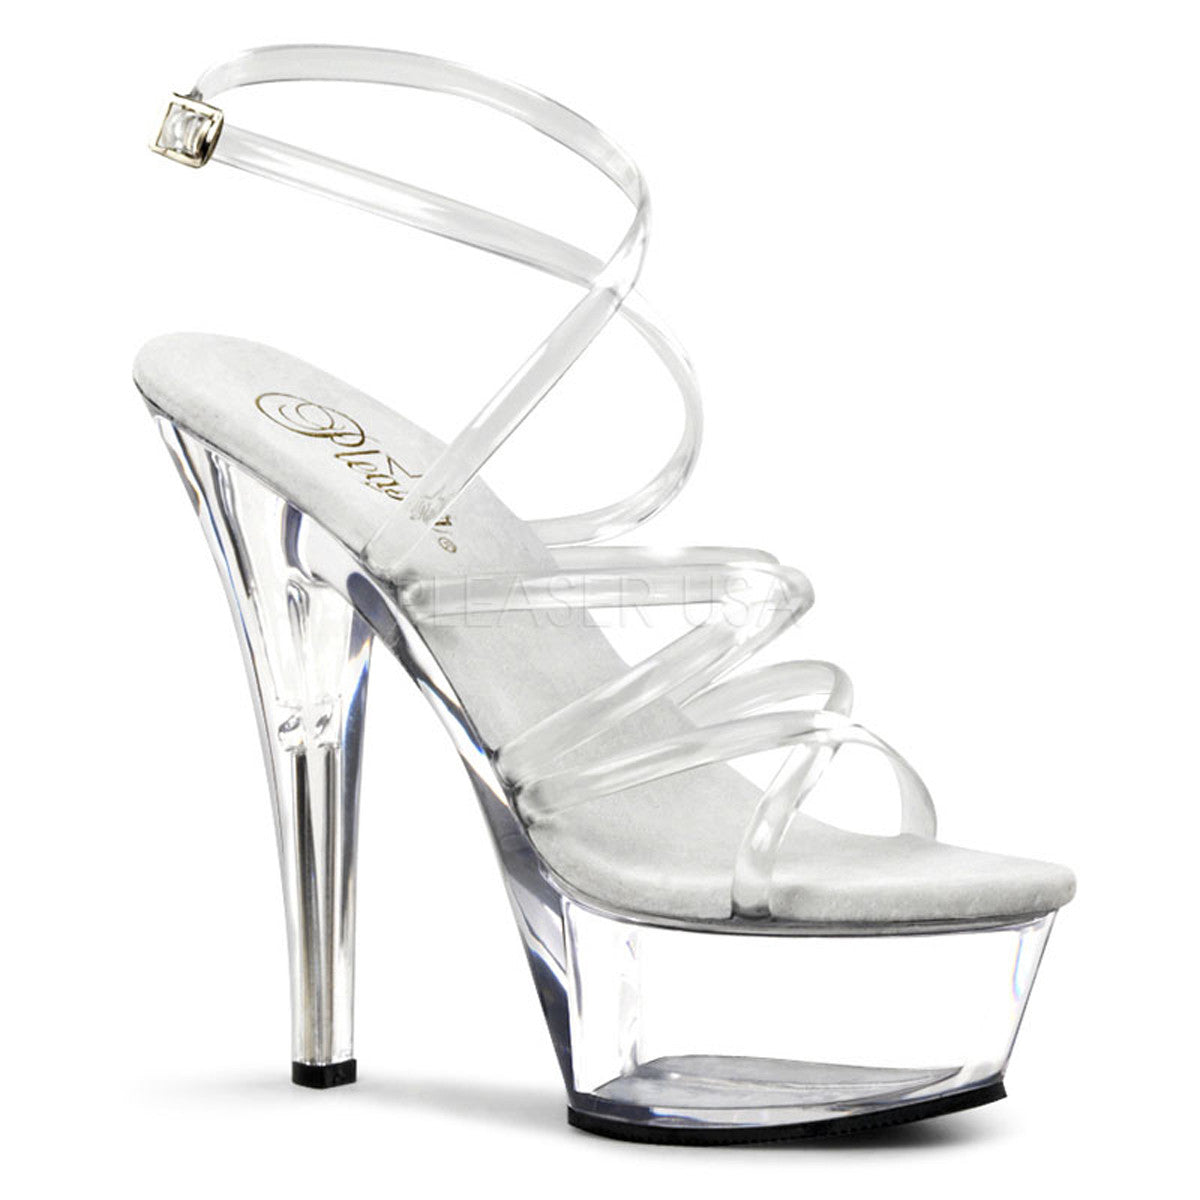 PLEASER KISS-206 Clear Platform Sandals - Shoecup.com